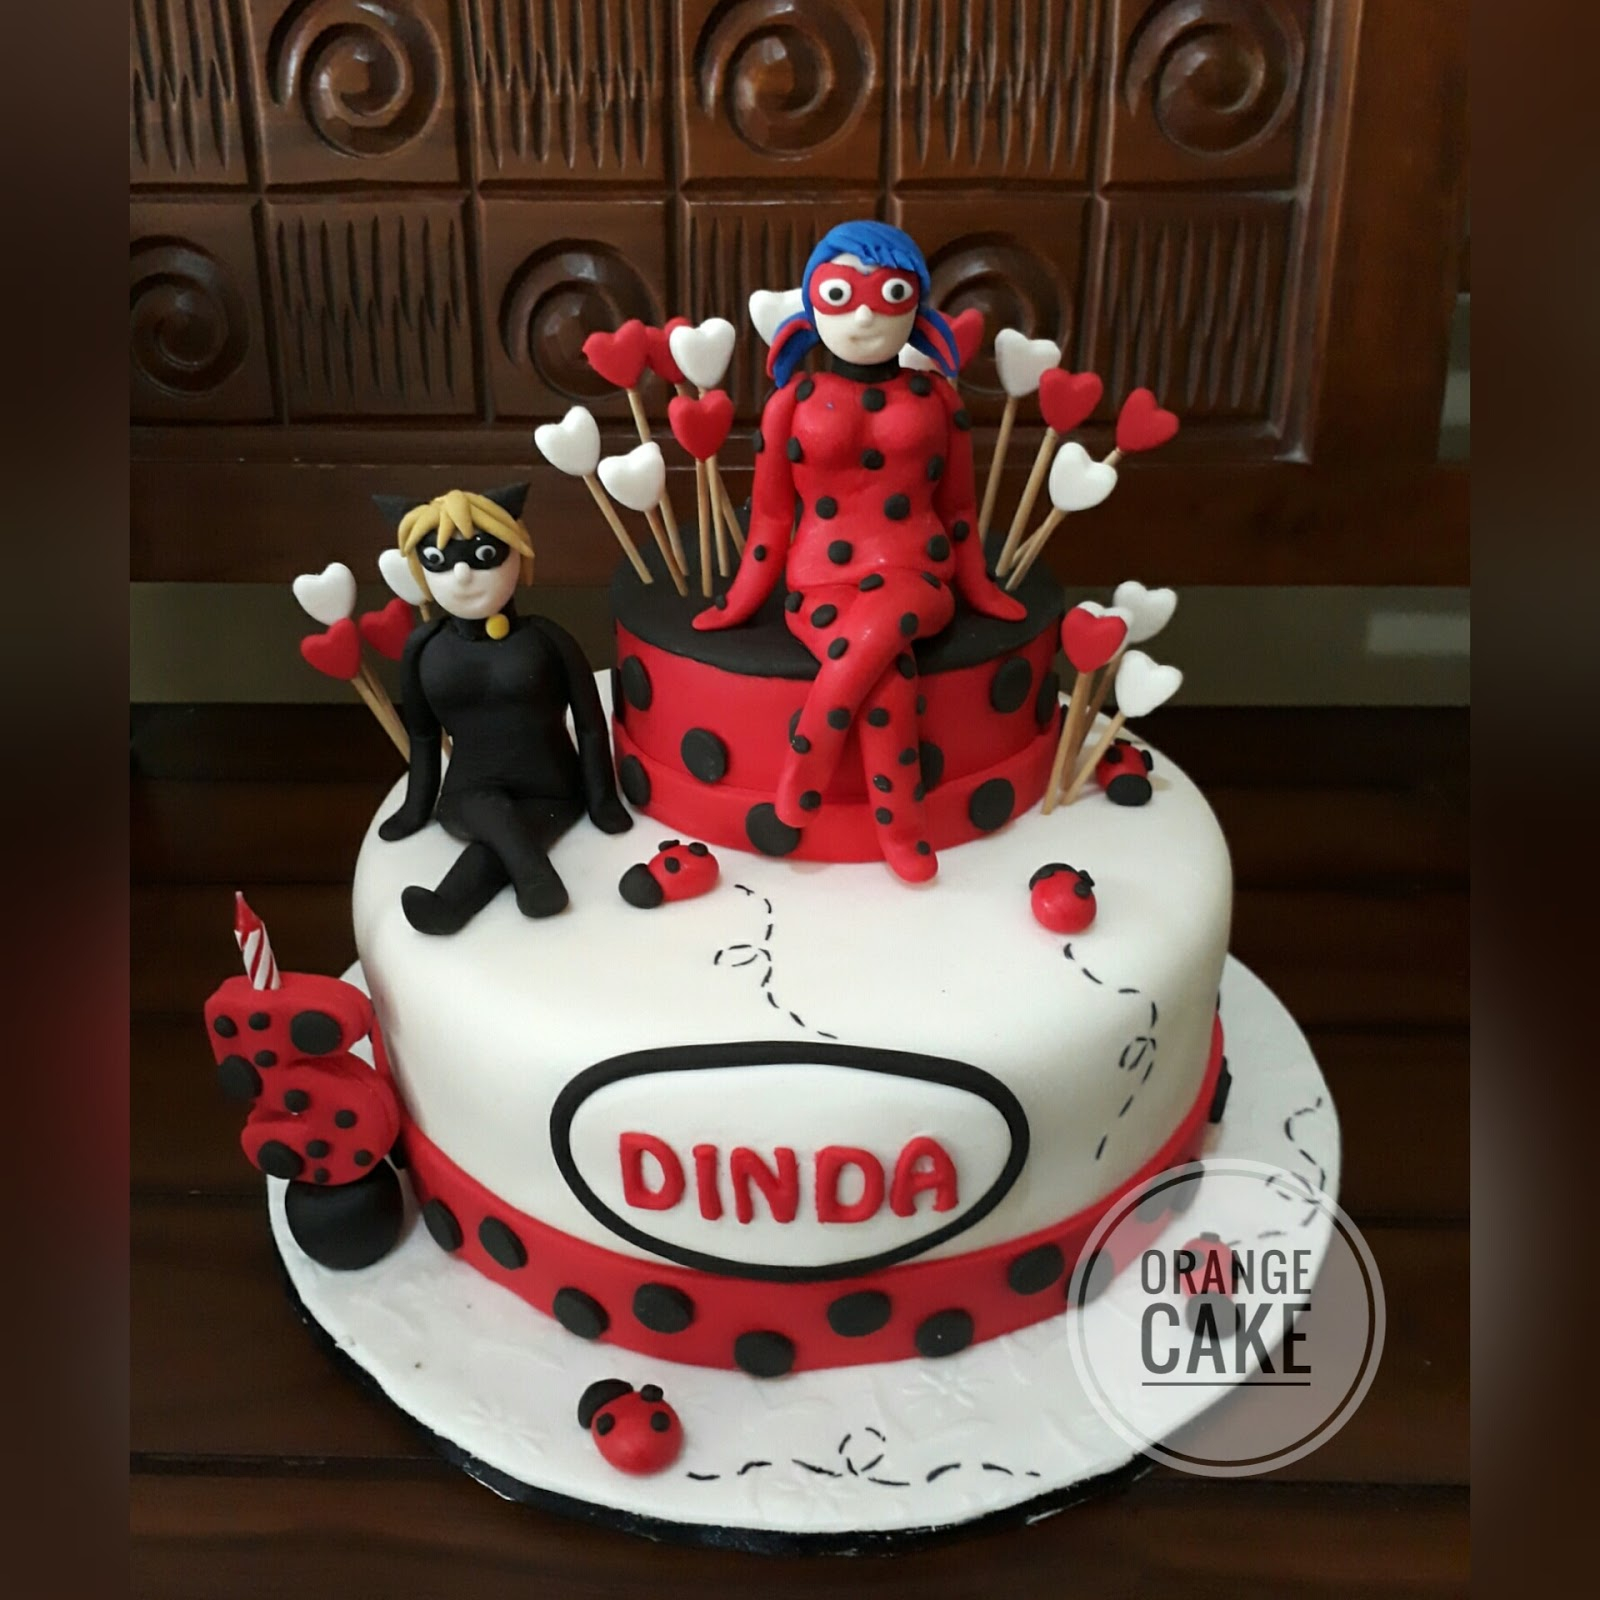 Ladybug Birthday Cake Orange Cake Miraculous Ladybug Birthday Cake For Dinda